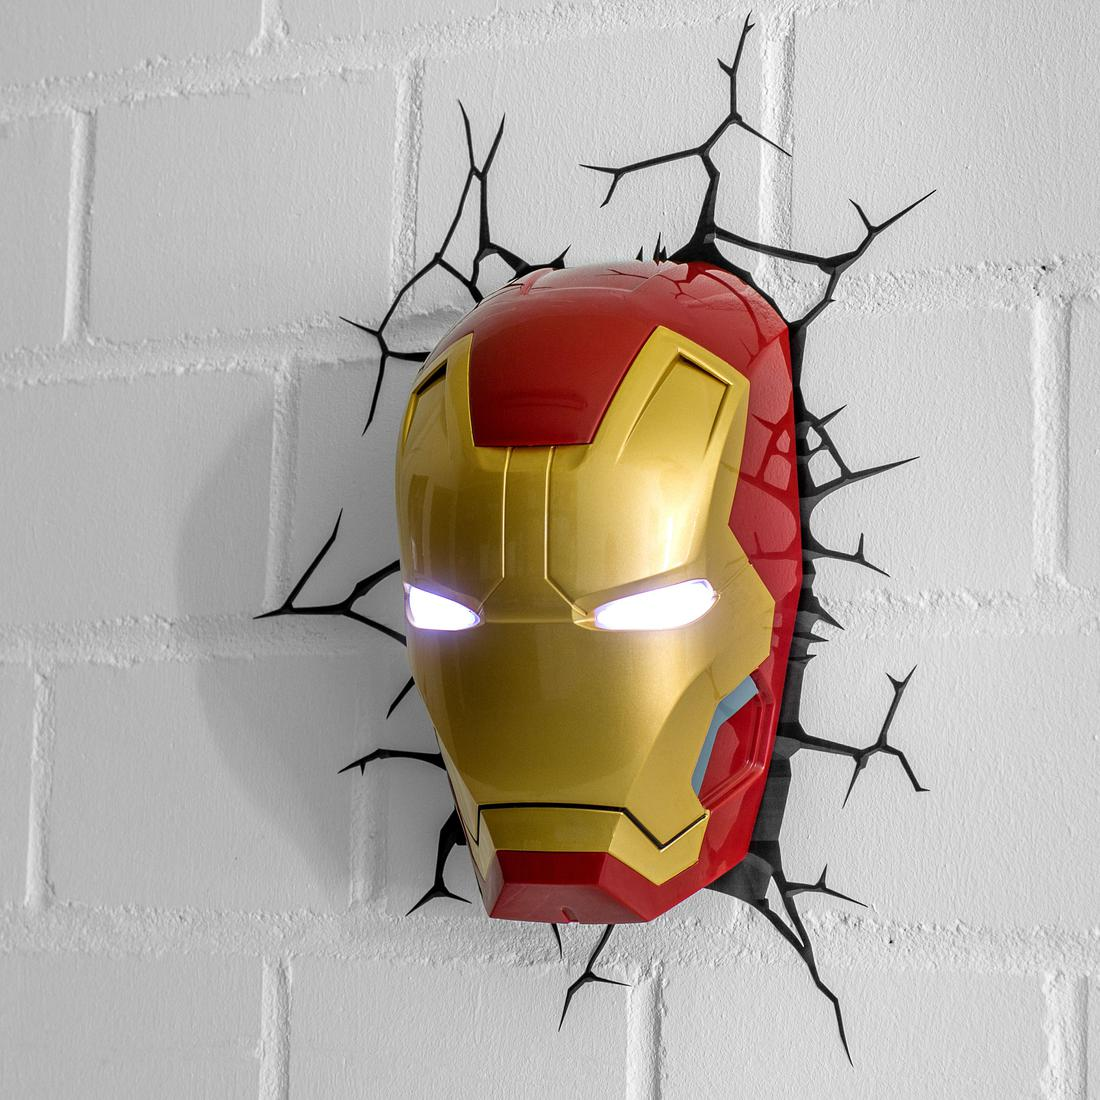 iron man wandlampe getdigital. Black Bedroom Furniture Sets. Home Design Ideas